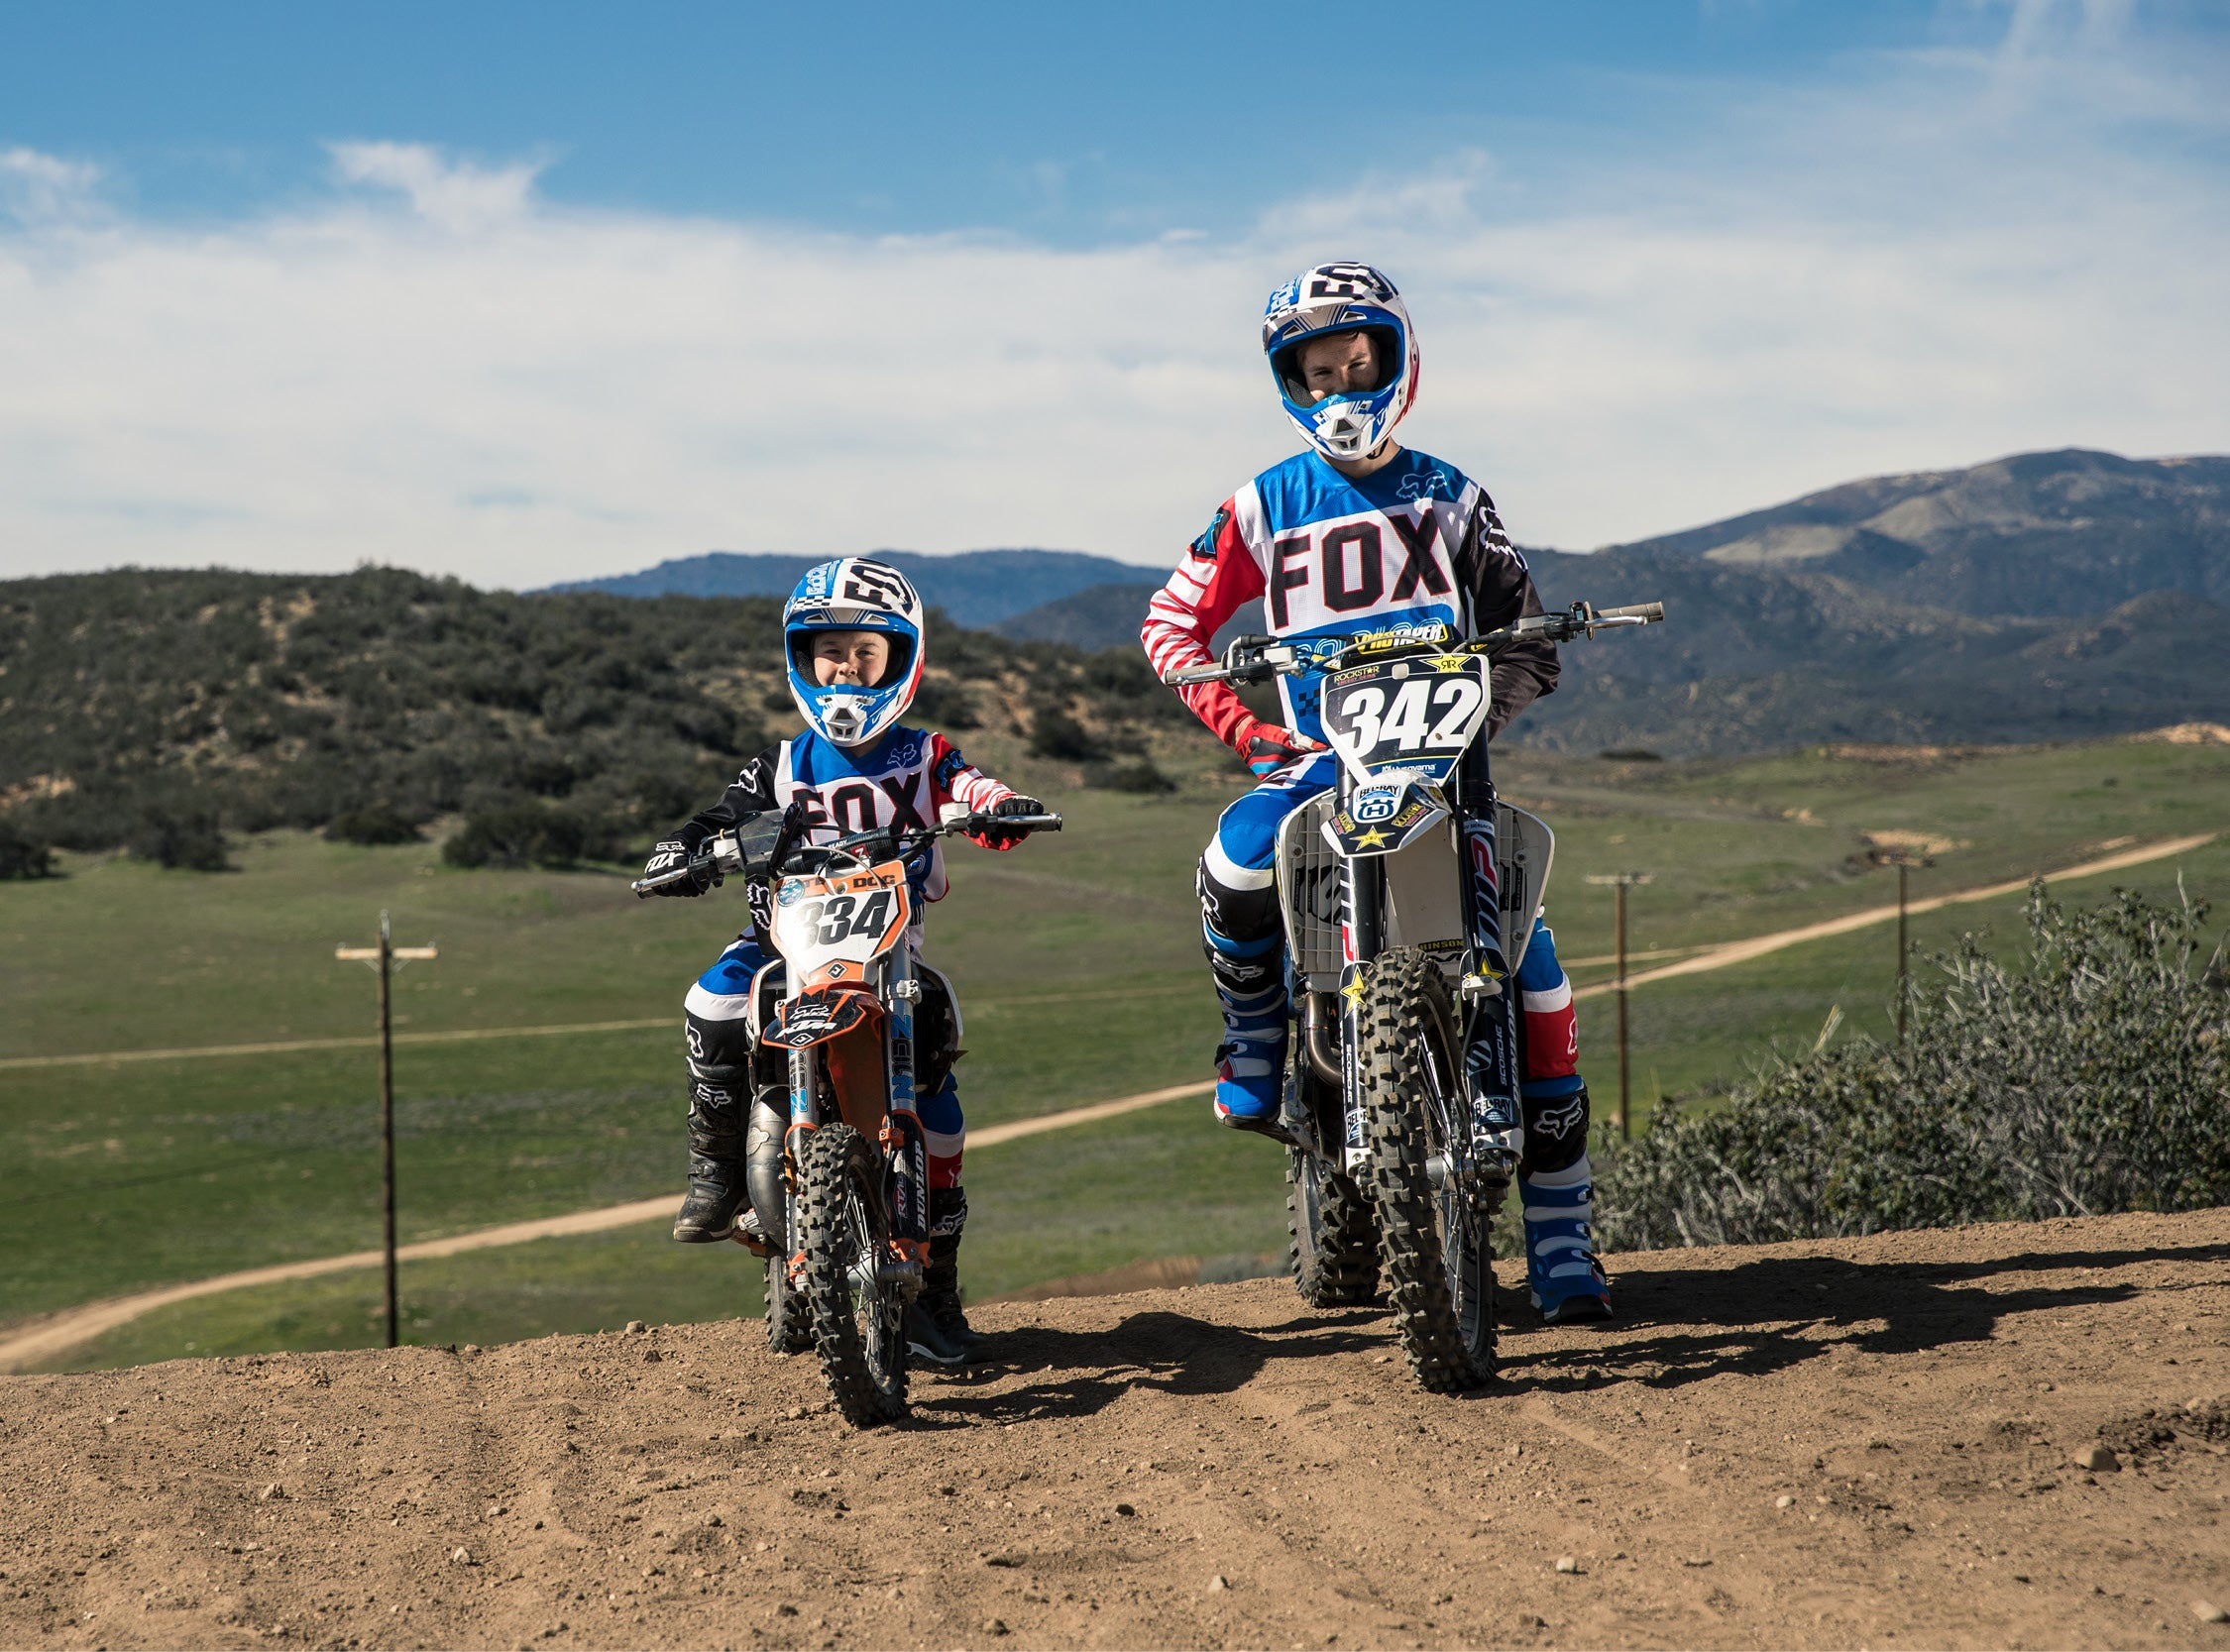 Fox Racing 180 Fiend Special Edition Motocross Gear